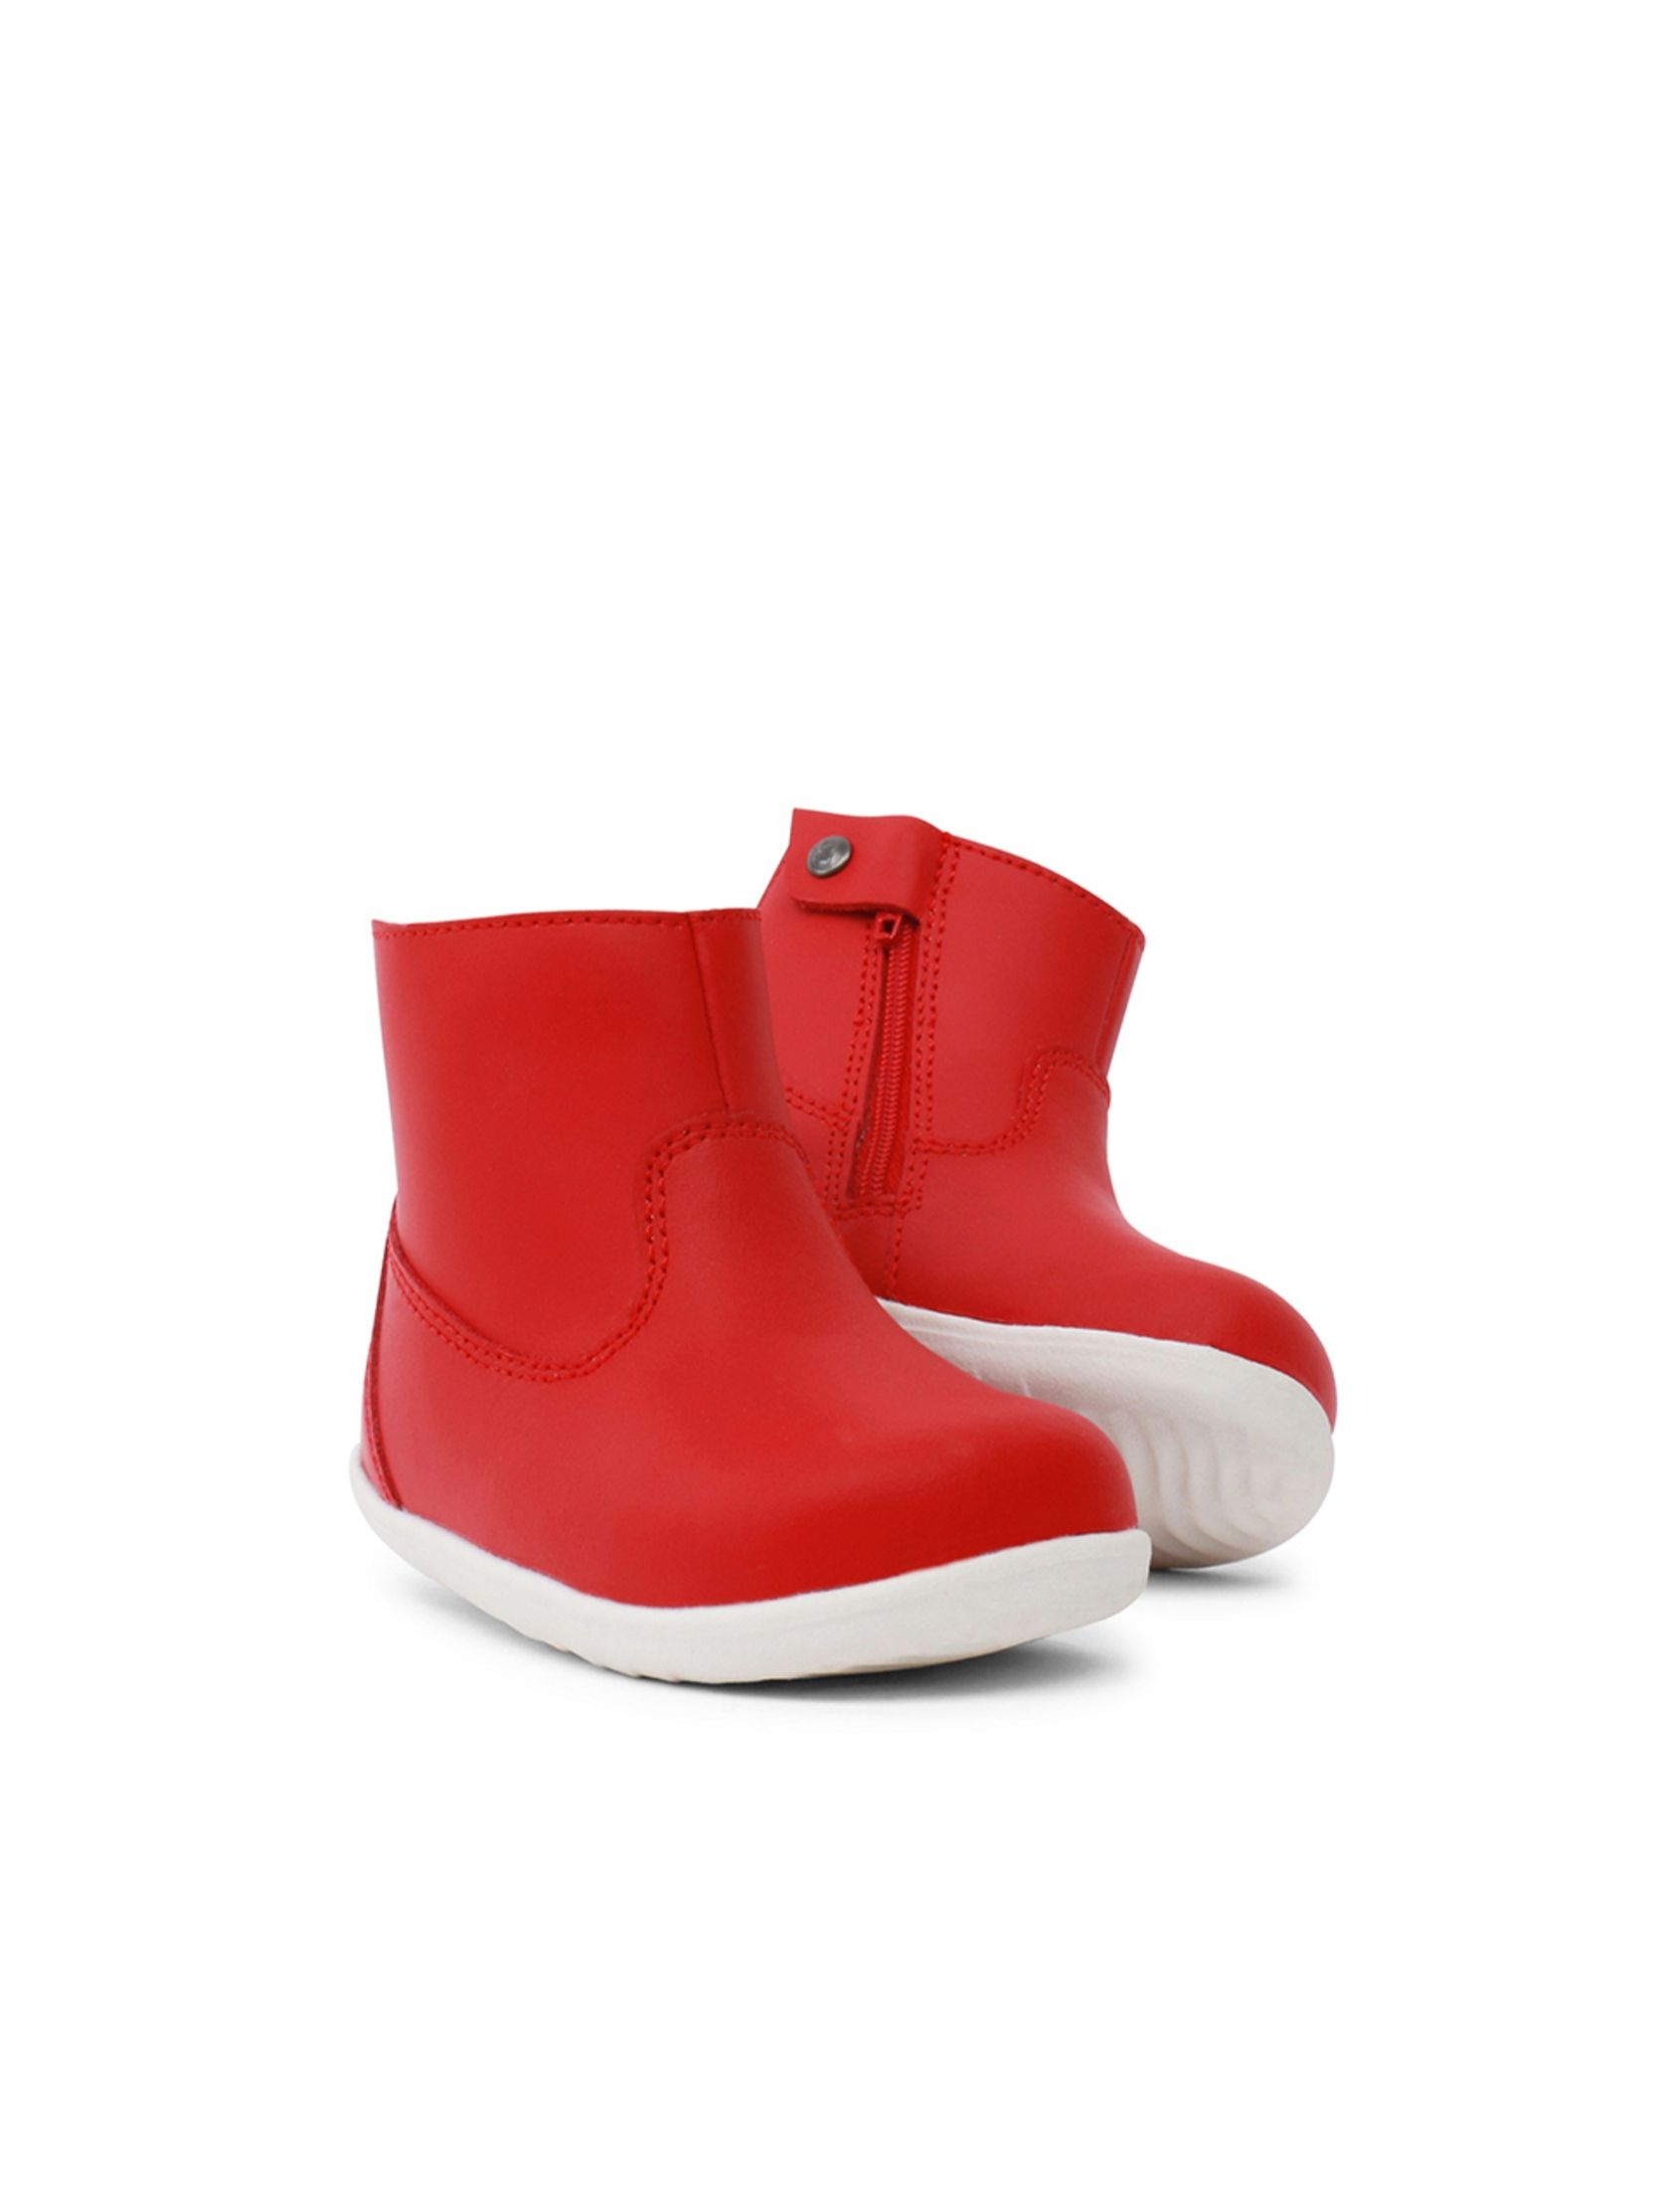 Bota_BOBUX _Paddington_Waterproof_ Red_Mamalua_02